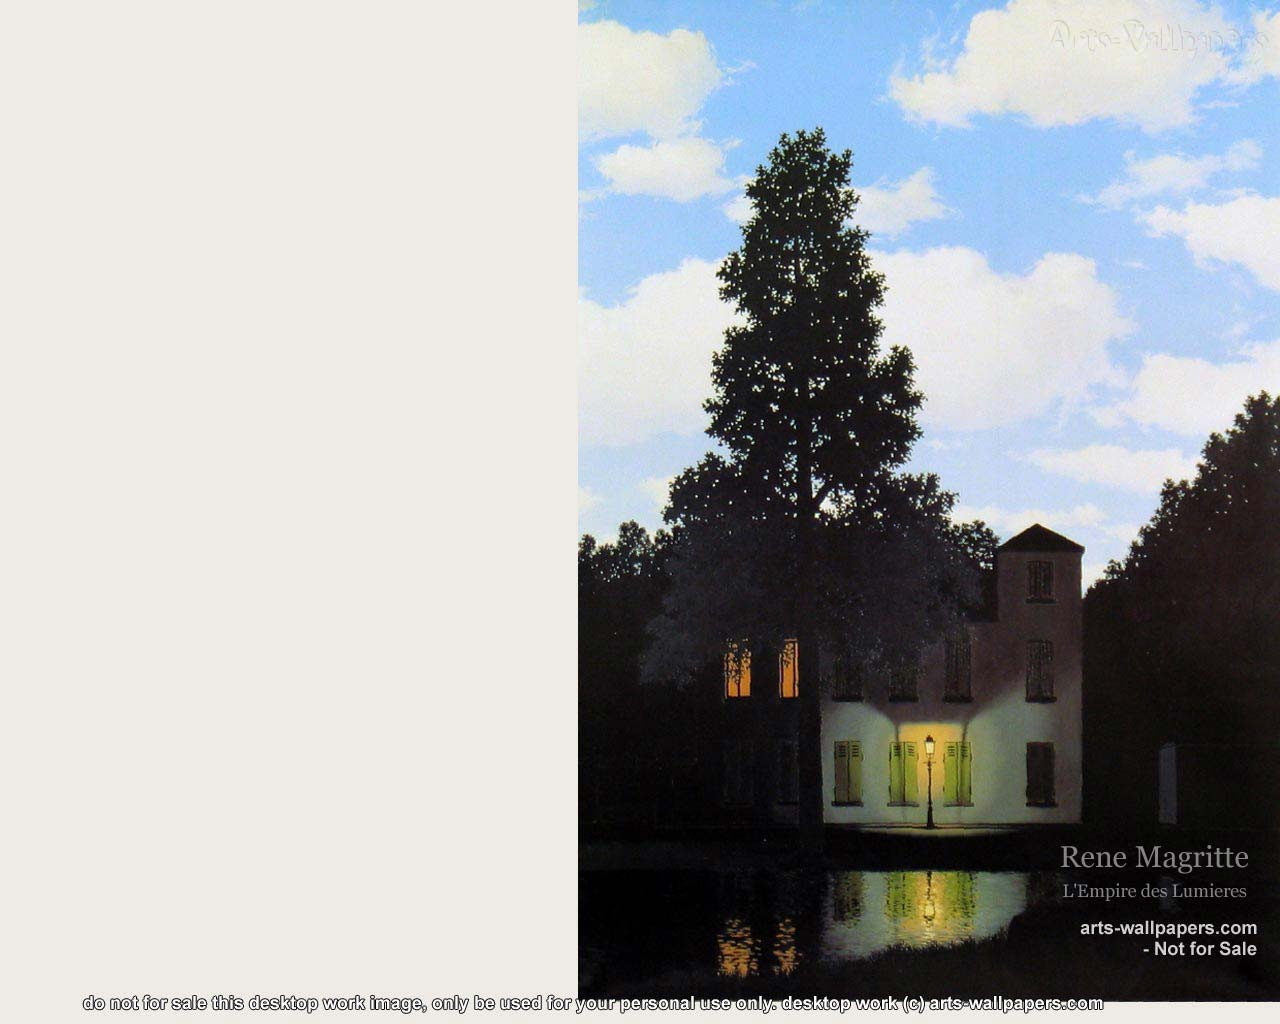 Rene Magritte Paintings Wallpaper 1280 x 1024 1280x1024